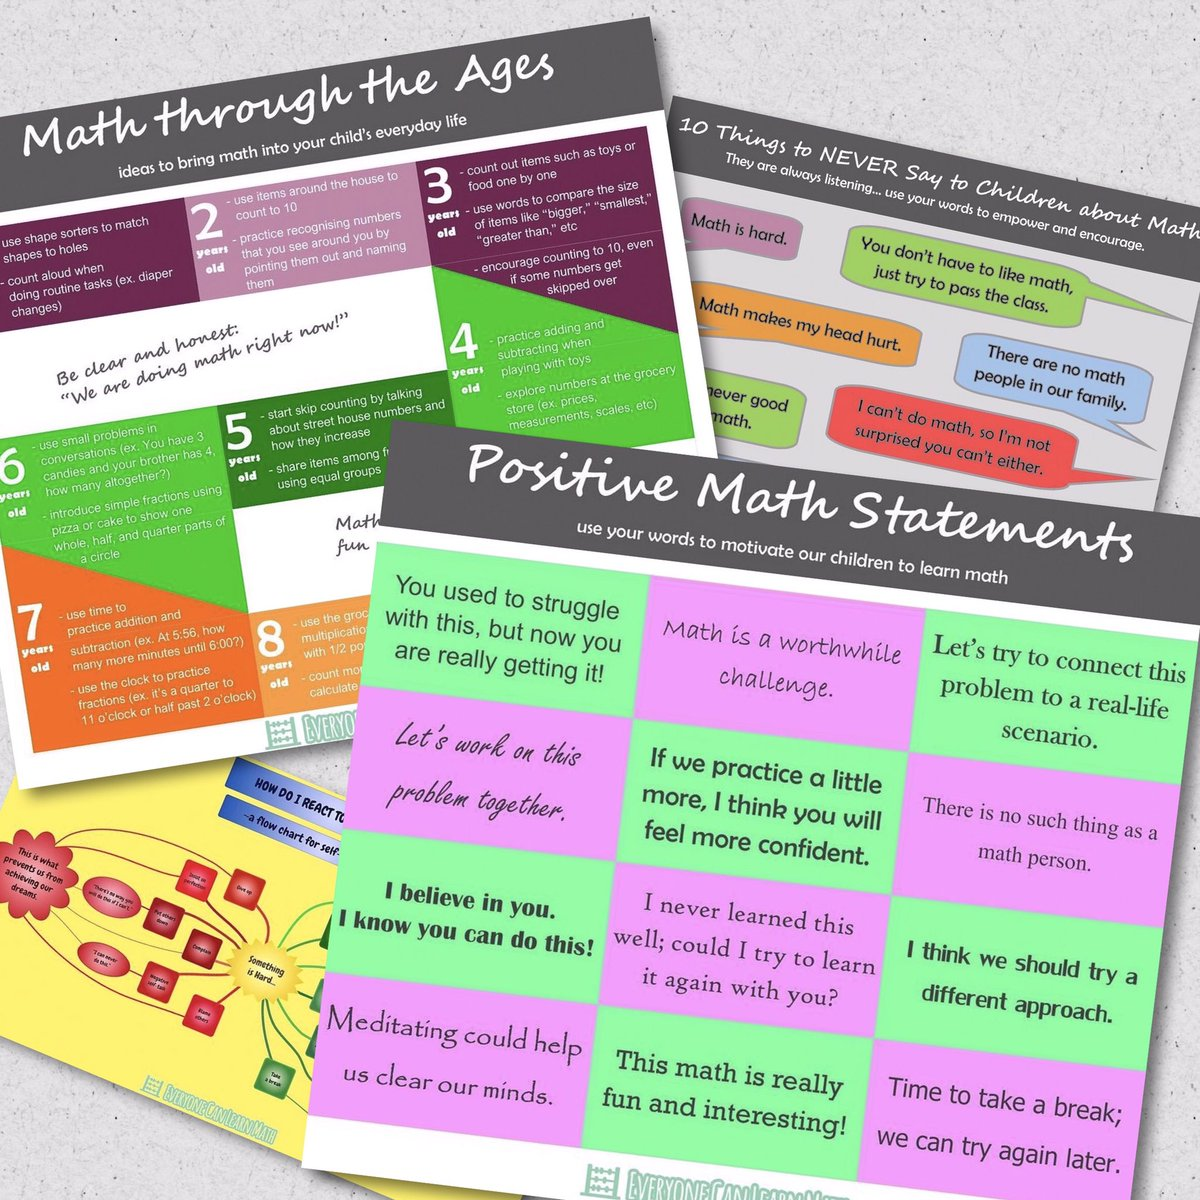 test Twitter Media - People are asking for printable versions of our #mathmindset posters, so we are making them available! Visit our website https://t.co/u8fxkuJGPd to sign up for our email list. We will be sending out PDF versions of our posters to subscribers in the next few weeks. #growthmindset https://t.co/Yp3iylCOo7